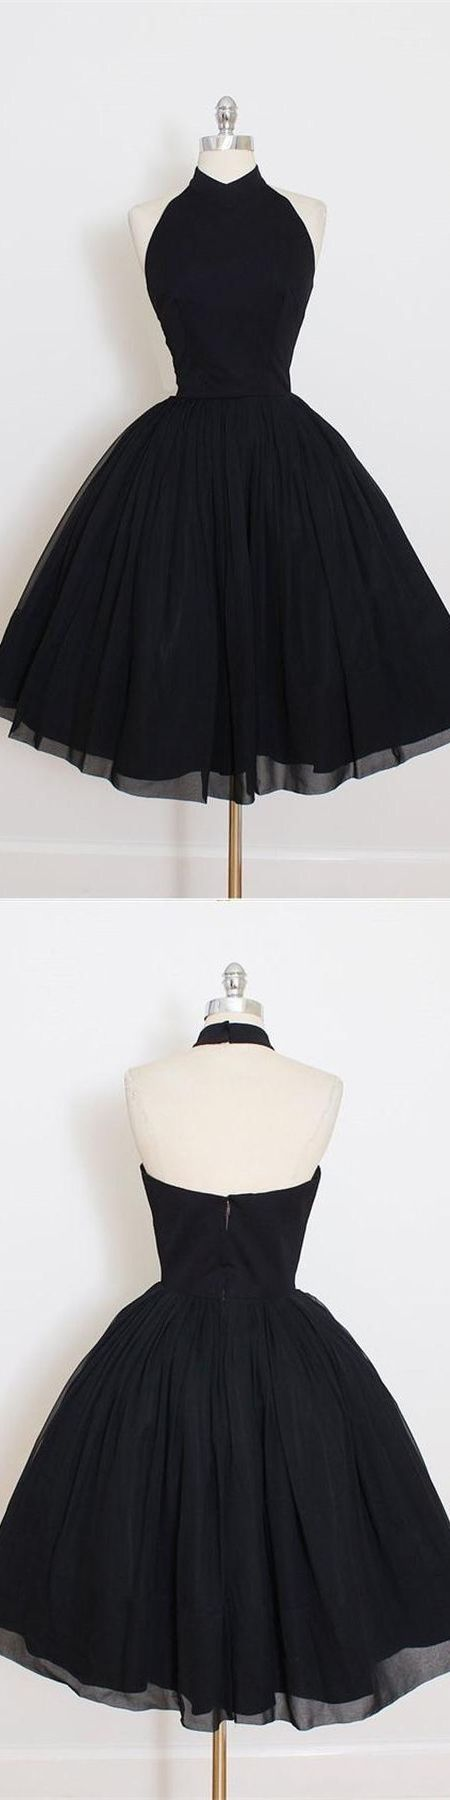 Homecoming Dresses,Vintage Homecoming Dresses,Black Homecoming Dresses,Sweet 16 Dresses,Simple Homecoming Dresses,Cheap Homecoming Dress,Halter Homecoming Dresses Cocktail Dresses DR0144